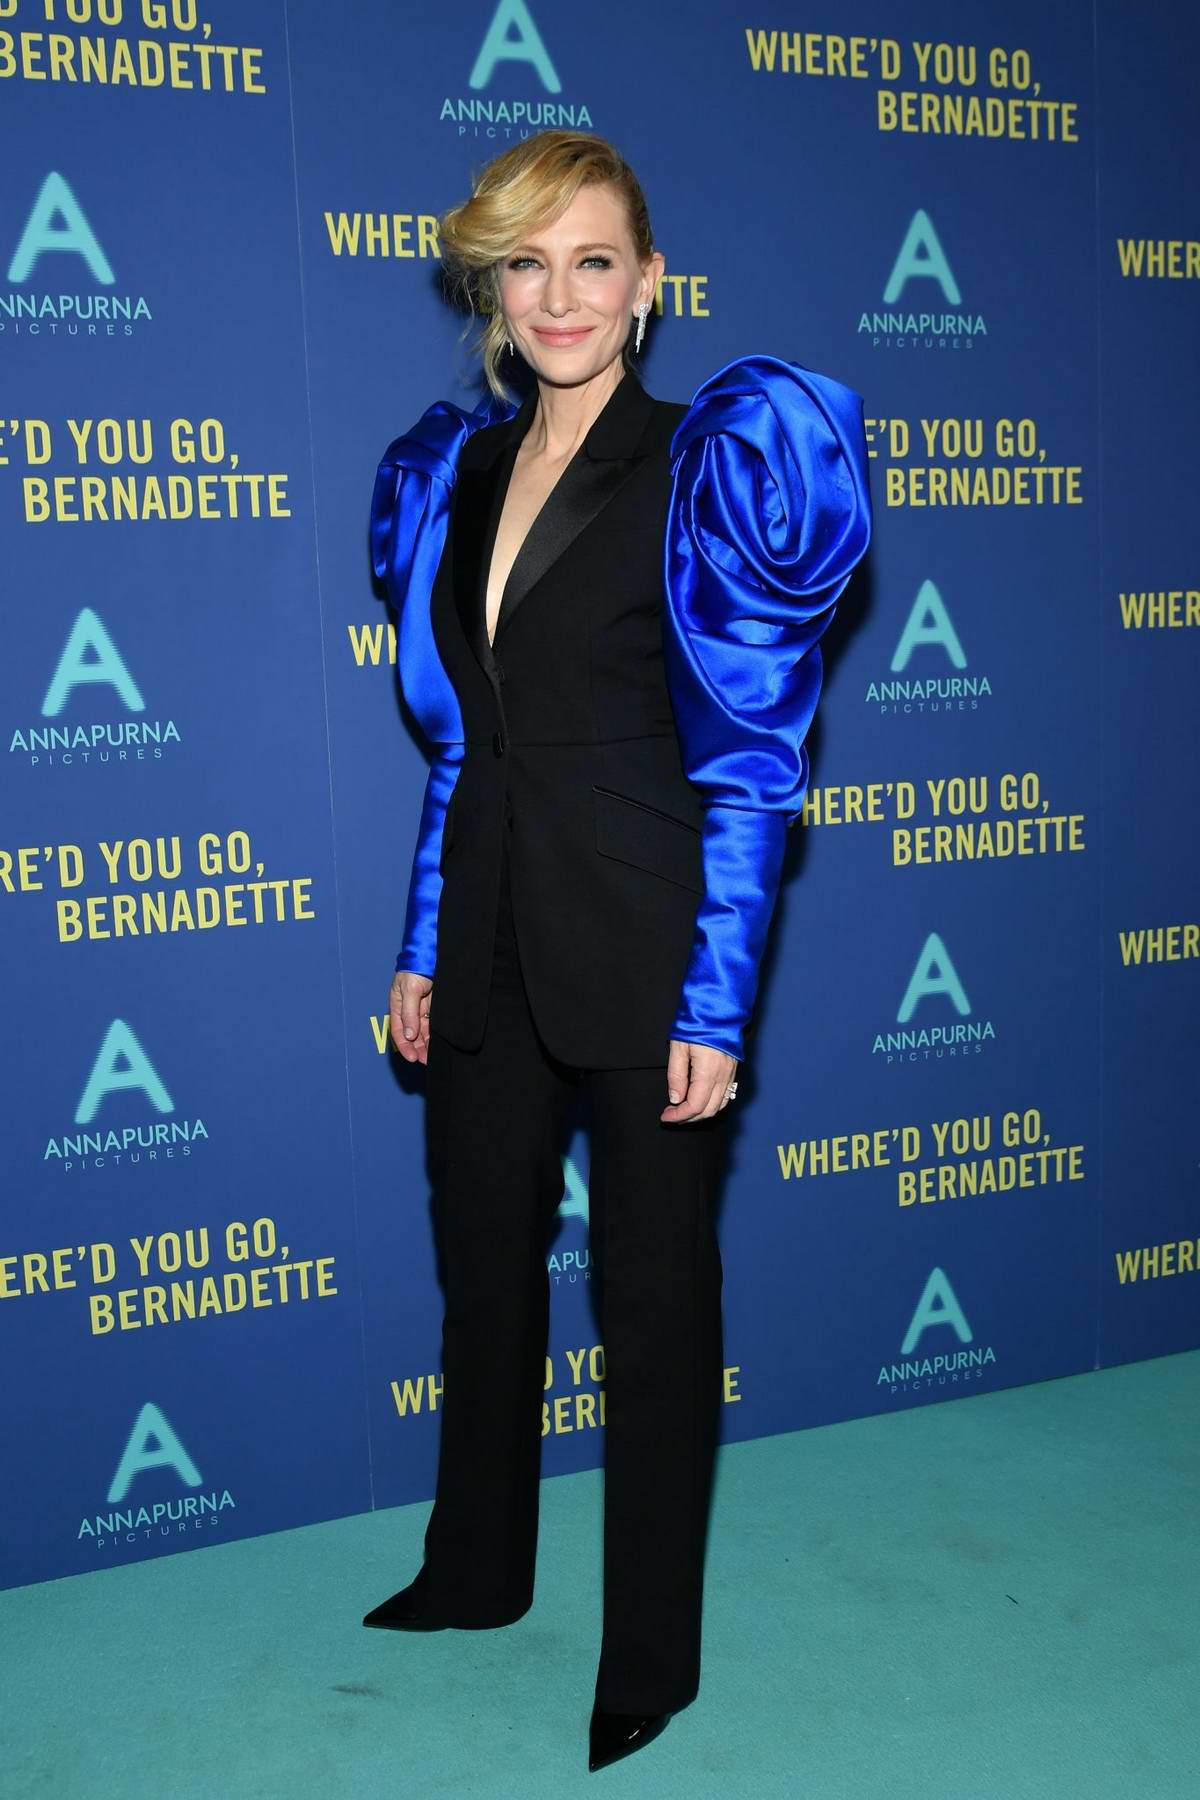 Cate Blanchett attends the 'Where'd You Go, Bernadette' New York Screening at Metrograph in New York City